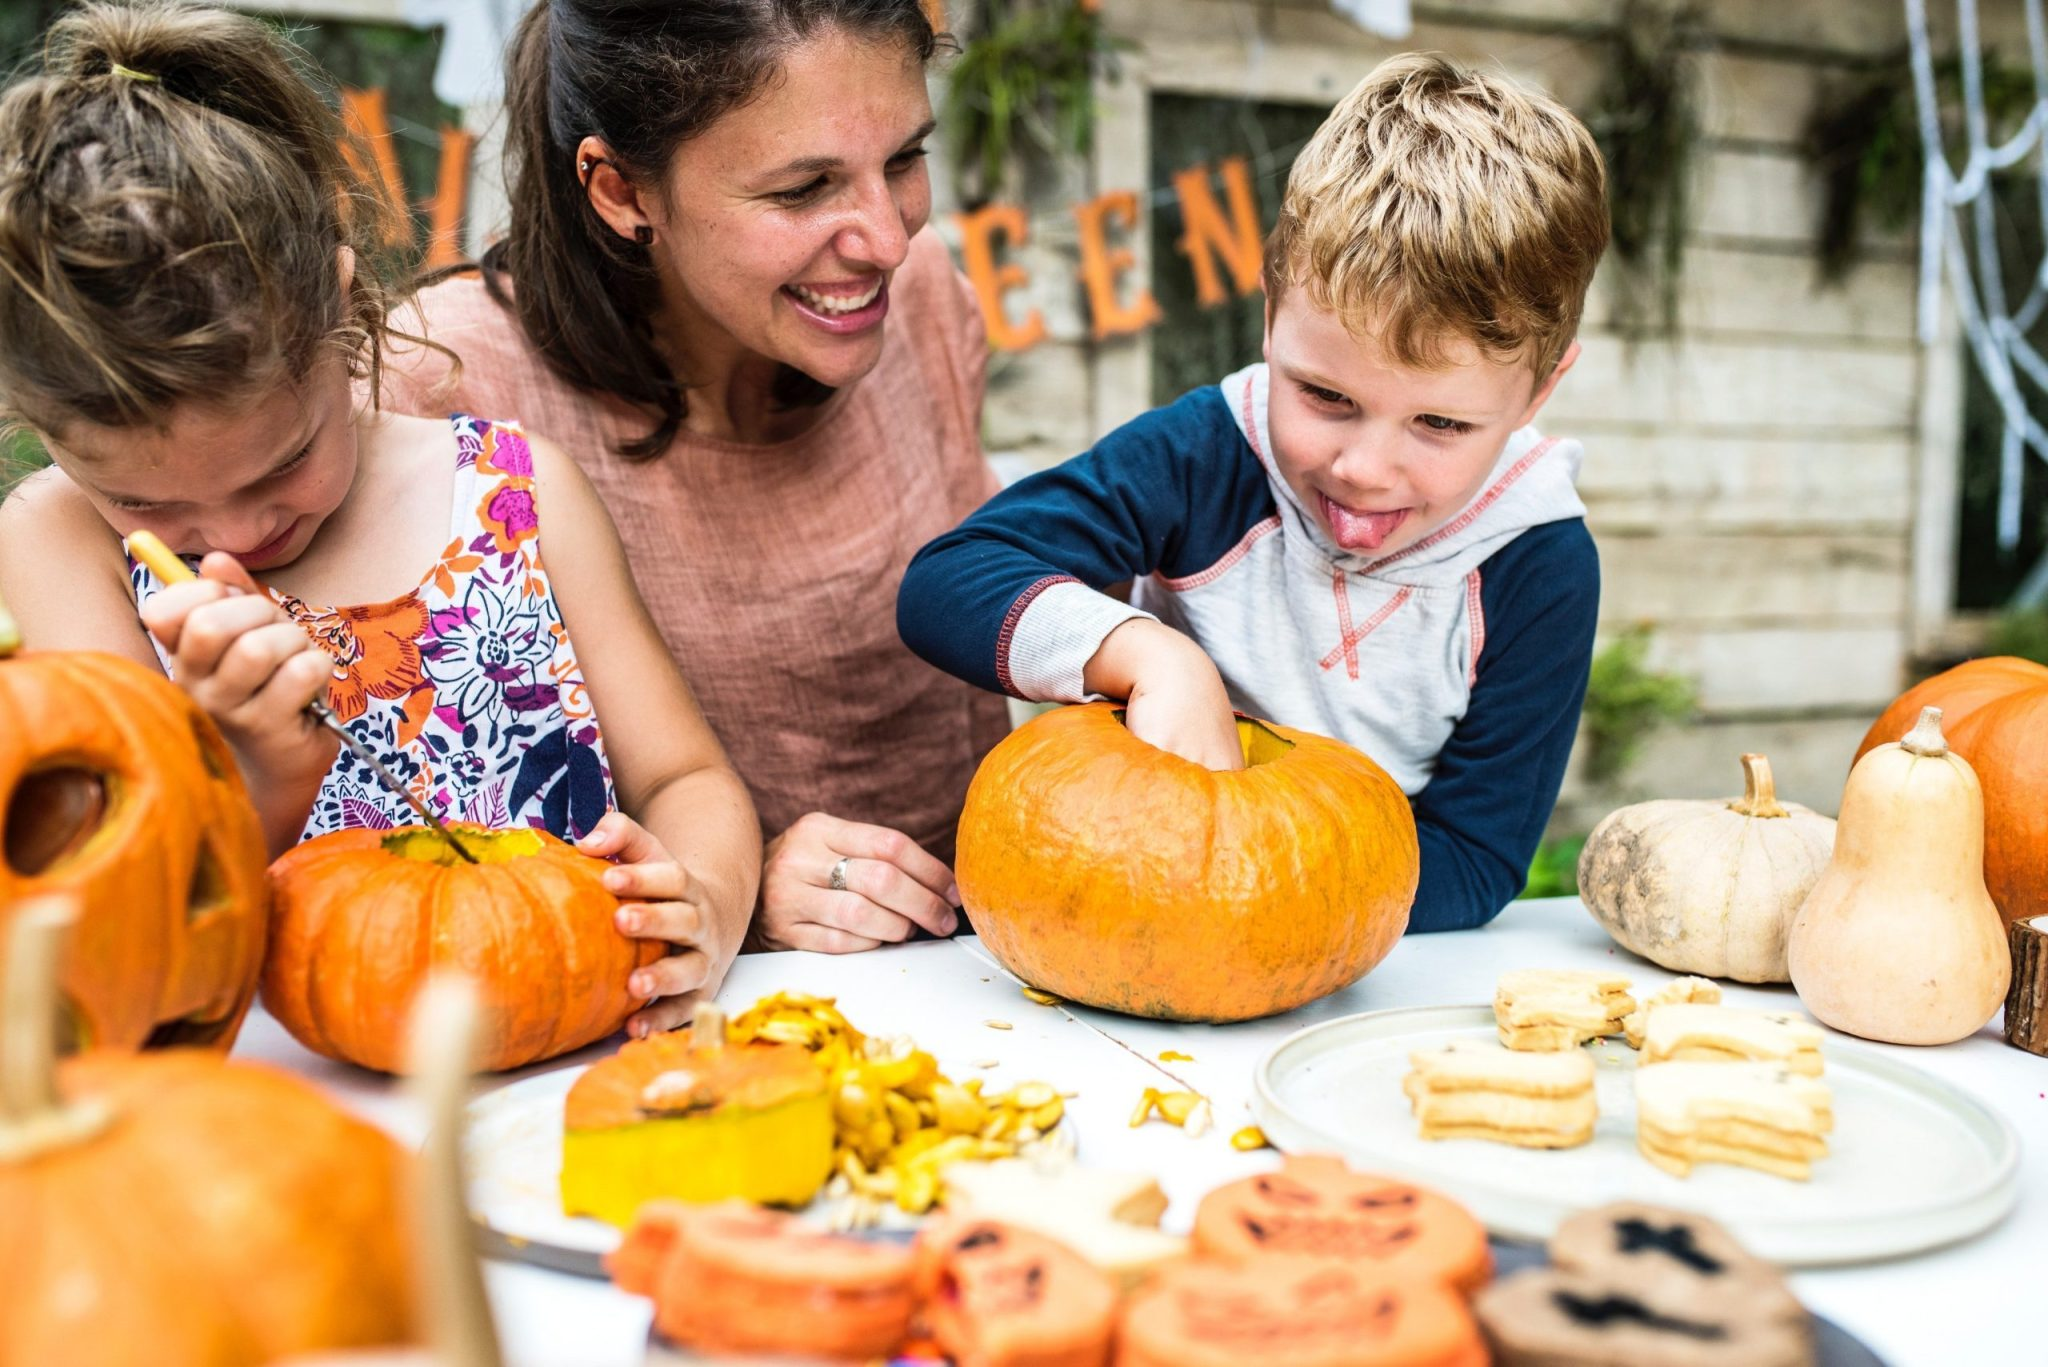 Experience these fun fall activities with your family and litte ones this season. Outdoor activities with pumpkins, apples, and leaves are a blast for kids!